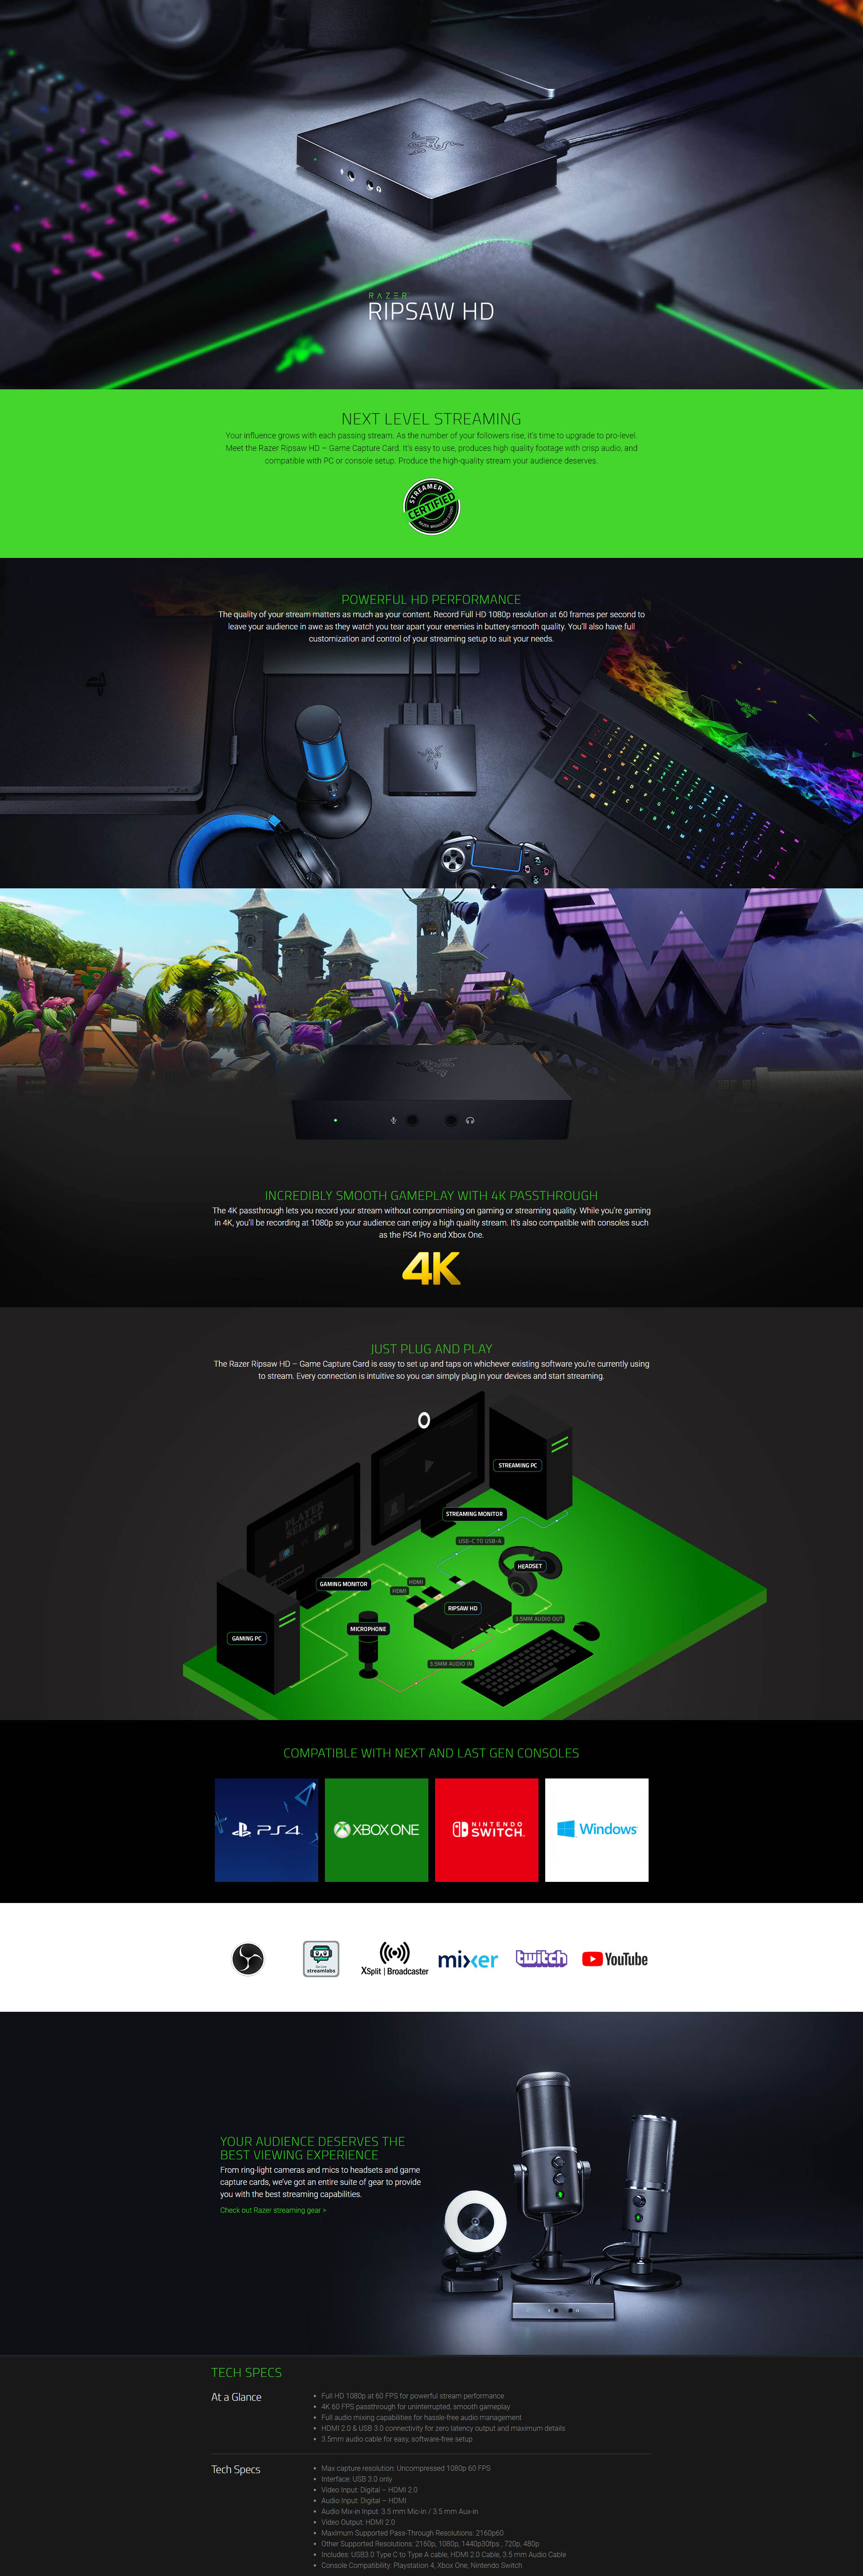 A large marketing image providing additional information about the product Razer Ripsaw HD USB3.0 Type-C Game Capture Card - Additional alt info not provided